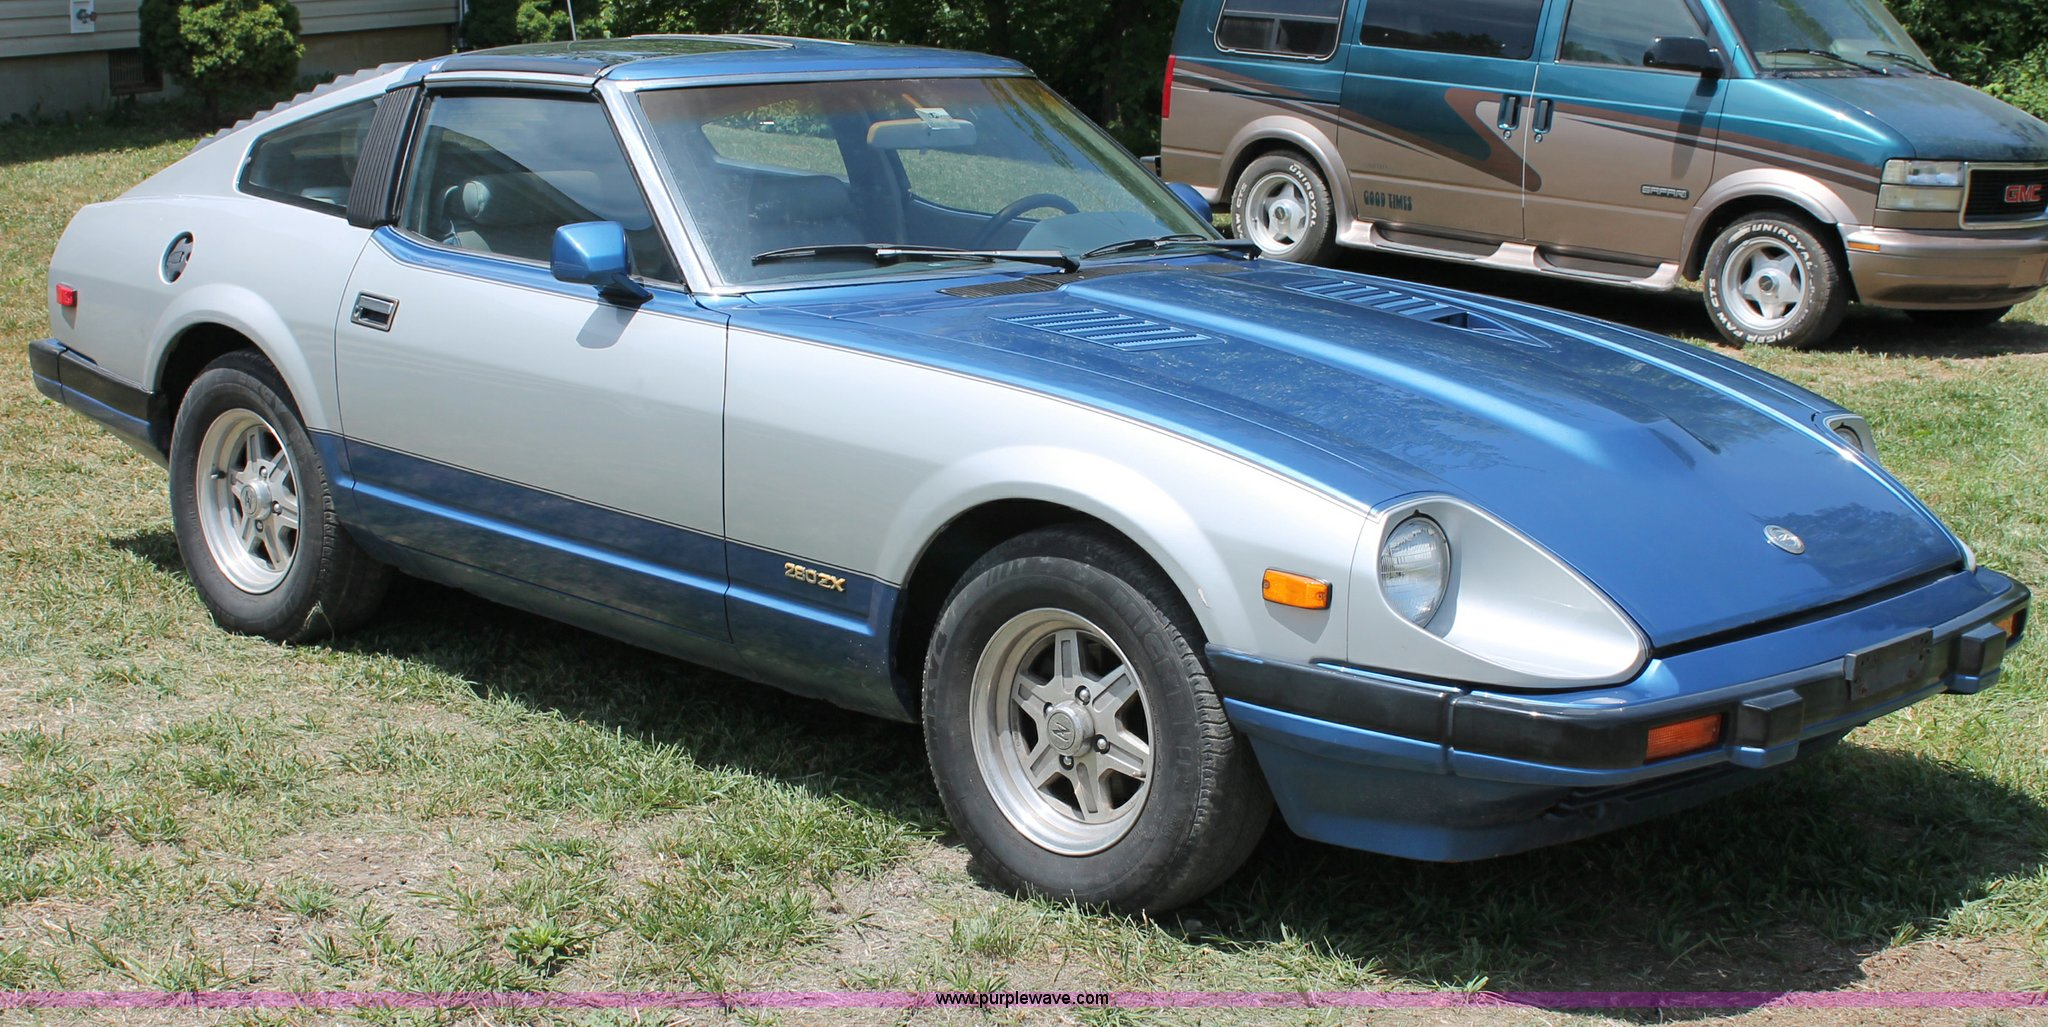 1982 nissan datsun 280zx item c2558 sold june 27 midwes